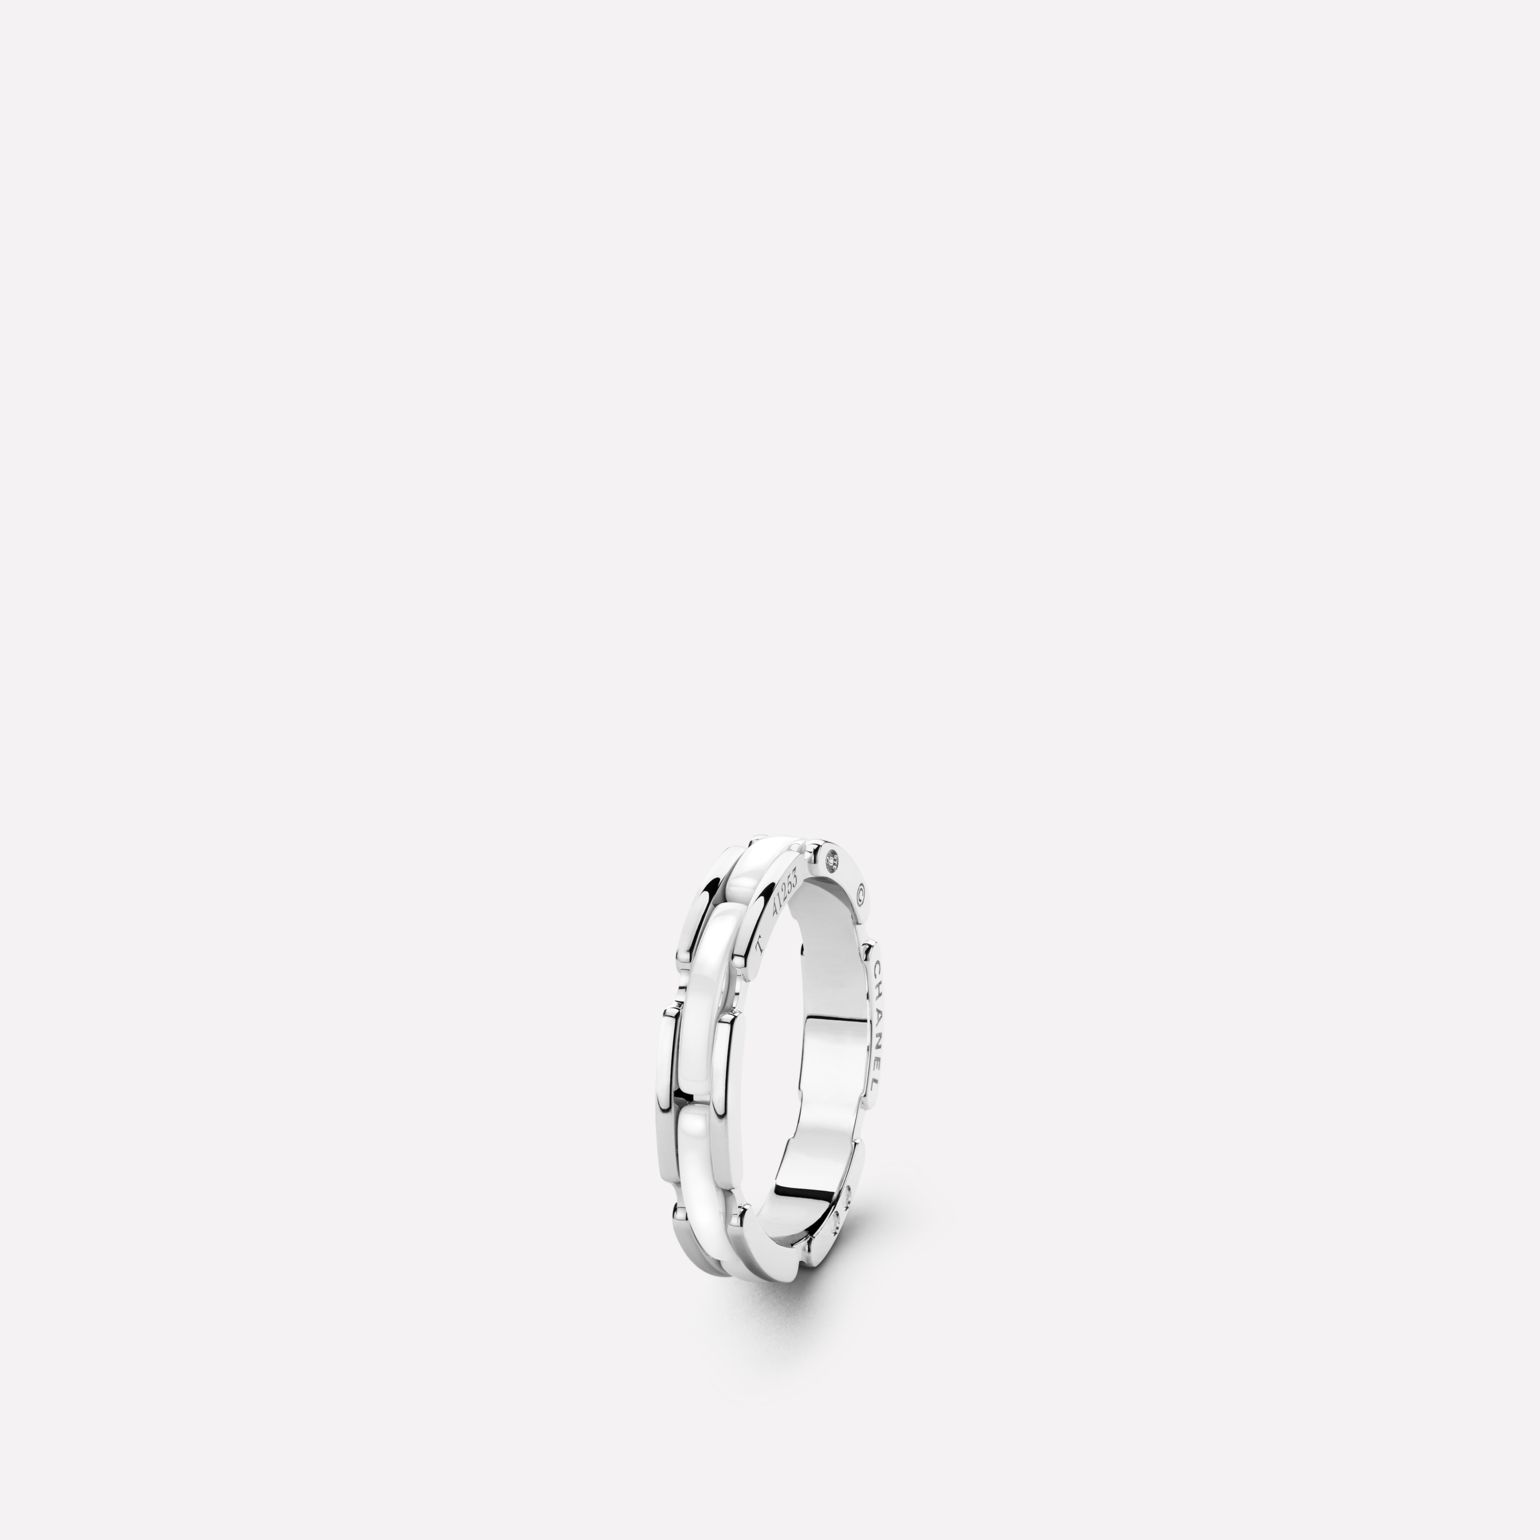 Ultra Ring Ultra ring in white ceramic and 18K white gold